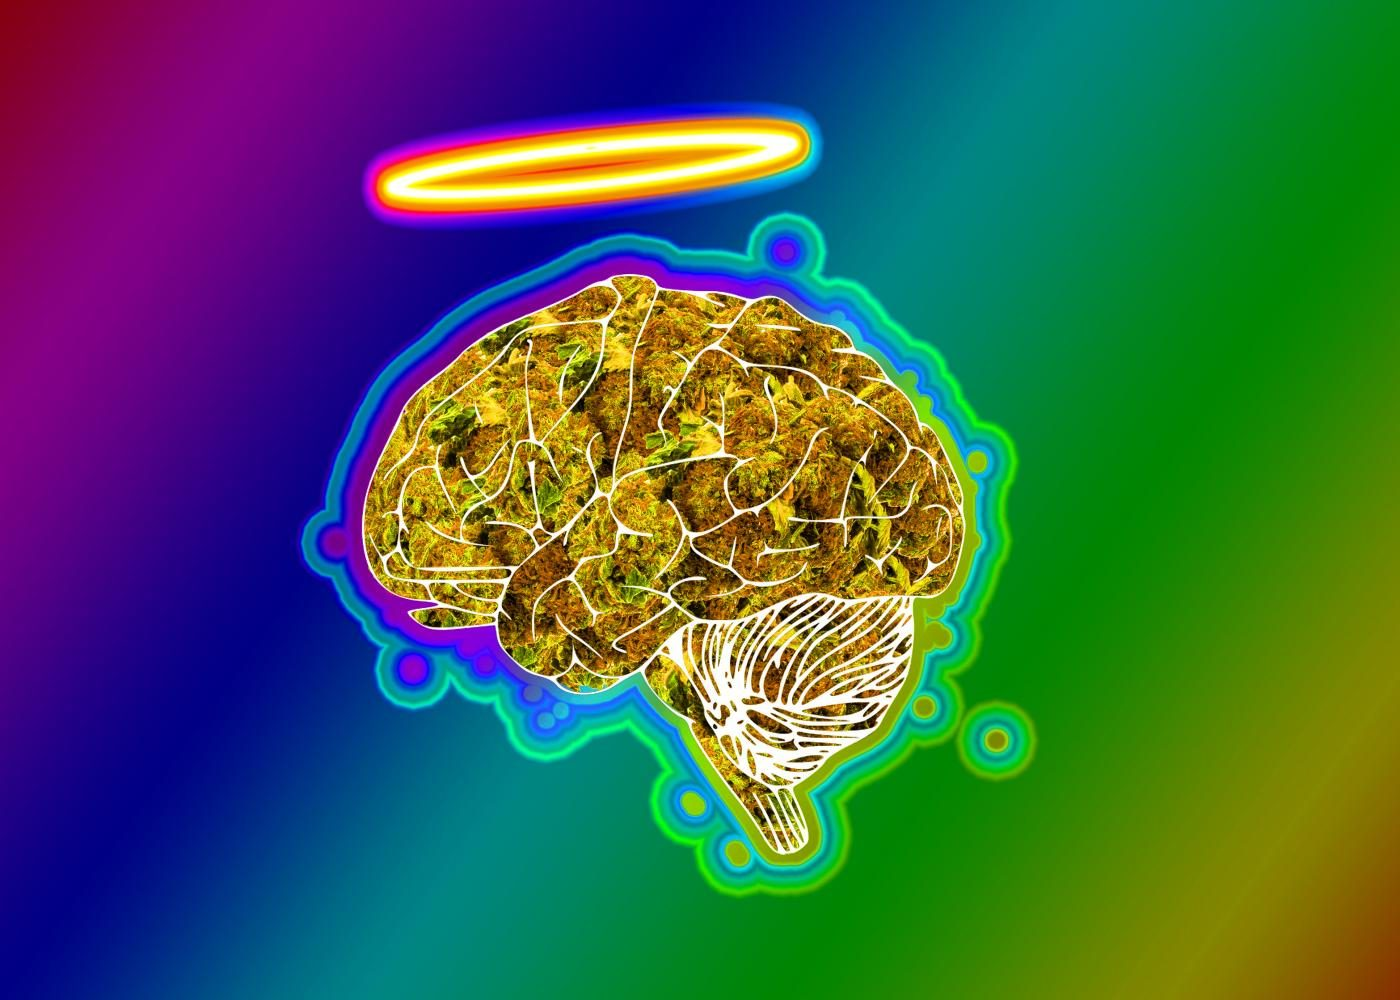 Recent+studies+done+by+researchers+at+Bonn+University+in+Germany+suggest+that+small+amounts+of+tetrahydrocannabinol+%28THC%29+can+restore+memory+and+learning+functions+in+the+brains+of+older+subjects%2C+similar+to+the+levels+of+younger+subjects.%0APrevious+studies+have+shown+that+THC+exposure+in+younger+and+adolescent+subjects+reduces+learning+and+memory+ability.+The+results+of+this+study+reflect+the+opposite+in+older+subjects.%0AThe+study+was+completed+using+mice+ranging+in+ages+from+2+to+18+months.+The+older+mice+treated+with+small+doses+of+THC+showed+similar+cognitive+function+to+the+younger+mice+during+testing.%0AThe+researchers+are+planning+a+clinical+trial+on+humans+showing+signs+of+cognitive+decline.+The+results+from+the+study+done+on+mice+are+promising+for+those+with+Alzheimer%E2%80%99s.+THC+decreases+the+production+of+amyloid+beta%2C+a+protein+that+spikes+in+early+stages+of+the+disease%2C+according+to+a+study+done+at+the+University+of+South+Florida.%0ABilly+Lauderdale%2C+an+employee+at+Cannabis+Central+in+Ellensburg%2C+has+noticed+an+increase+in+the+number+of+elderly+customers.%0AThese+customers+are+purchasing+more+cannabidiol+%28CBD%29+products+than+marijuana+products+including+THC%2C+according+to+Lauderdale.+Lauderdale+believes+more+marijuana+research+will+%E2%80%9Chelp+people+understand+there+is+more+than+one+side%E2%80%9D+to+pot+and+it+is+not+just+used+to+get+high.+The+older+customers+are+utilizing+the+other+parts+of+the+plant.%0AWith+more+research+on+medical+benefits+Dan+DeVries%2C+manager+at+The+Fire+House+in+Ellensburg%2C+said+%E2%80%9Cthe+stigma+will+go+away%2C%E2%80%9D+referring+to+the+stereotypes+surrounding+pot+users.%0A%E2%80%9CWe%E2%80%99ve+been+lied+to+for+so+long%2C%E2%80%9D+DeVries+said.%0AThe+criminalization+and+stigmatization+of+pot+goes+back+to+before+the+Nixon+administration%2C+and+DeVries+believes+the+older+generation+is+very+prideful+and+stuck+in+their+ways.+%0ADeVries+also+believes+the+lack+of+research+into+medical+marijuana+has+led+to+%E2%80%9Cpeople+not+being+able+to+get+outside+their+circumstances%2C%E2%80%9D+in+addition+to+being+somewhat+narrow-minded.%0AHe+also+believes+younger+generations+understand+marijuana+better+than+older+generations.+DeVries+recognizes+the+older+generation%E2%80%99s+lack+of+acceptance+stems+from+the+way+they+were+raised%2C+which+was+to+believe+pot+is+a+highly+addictive+gateway+drug.%0ADeVries+also+called+upon+the+media+to+continue+to+cover+medical+marijuana+research.+He+believes+if+the+media+%E2%80%9Ccontinues+to+publish+the+hell+out+of+positive+news%E2%80%9D+regarding+pot%2C+the+older+generations+could+possibly+be+swayed+to+change+their+minds+on+medical+marijuana.+